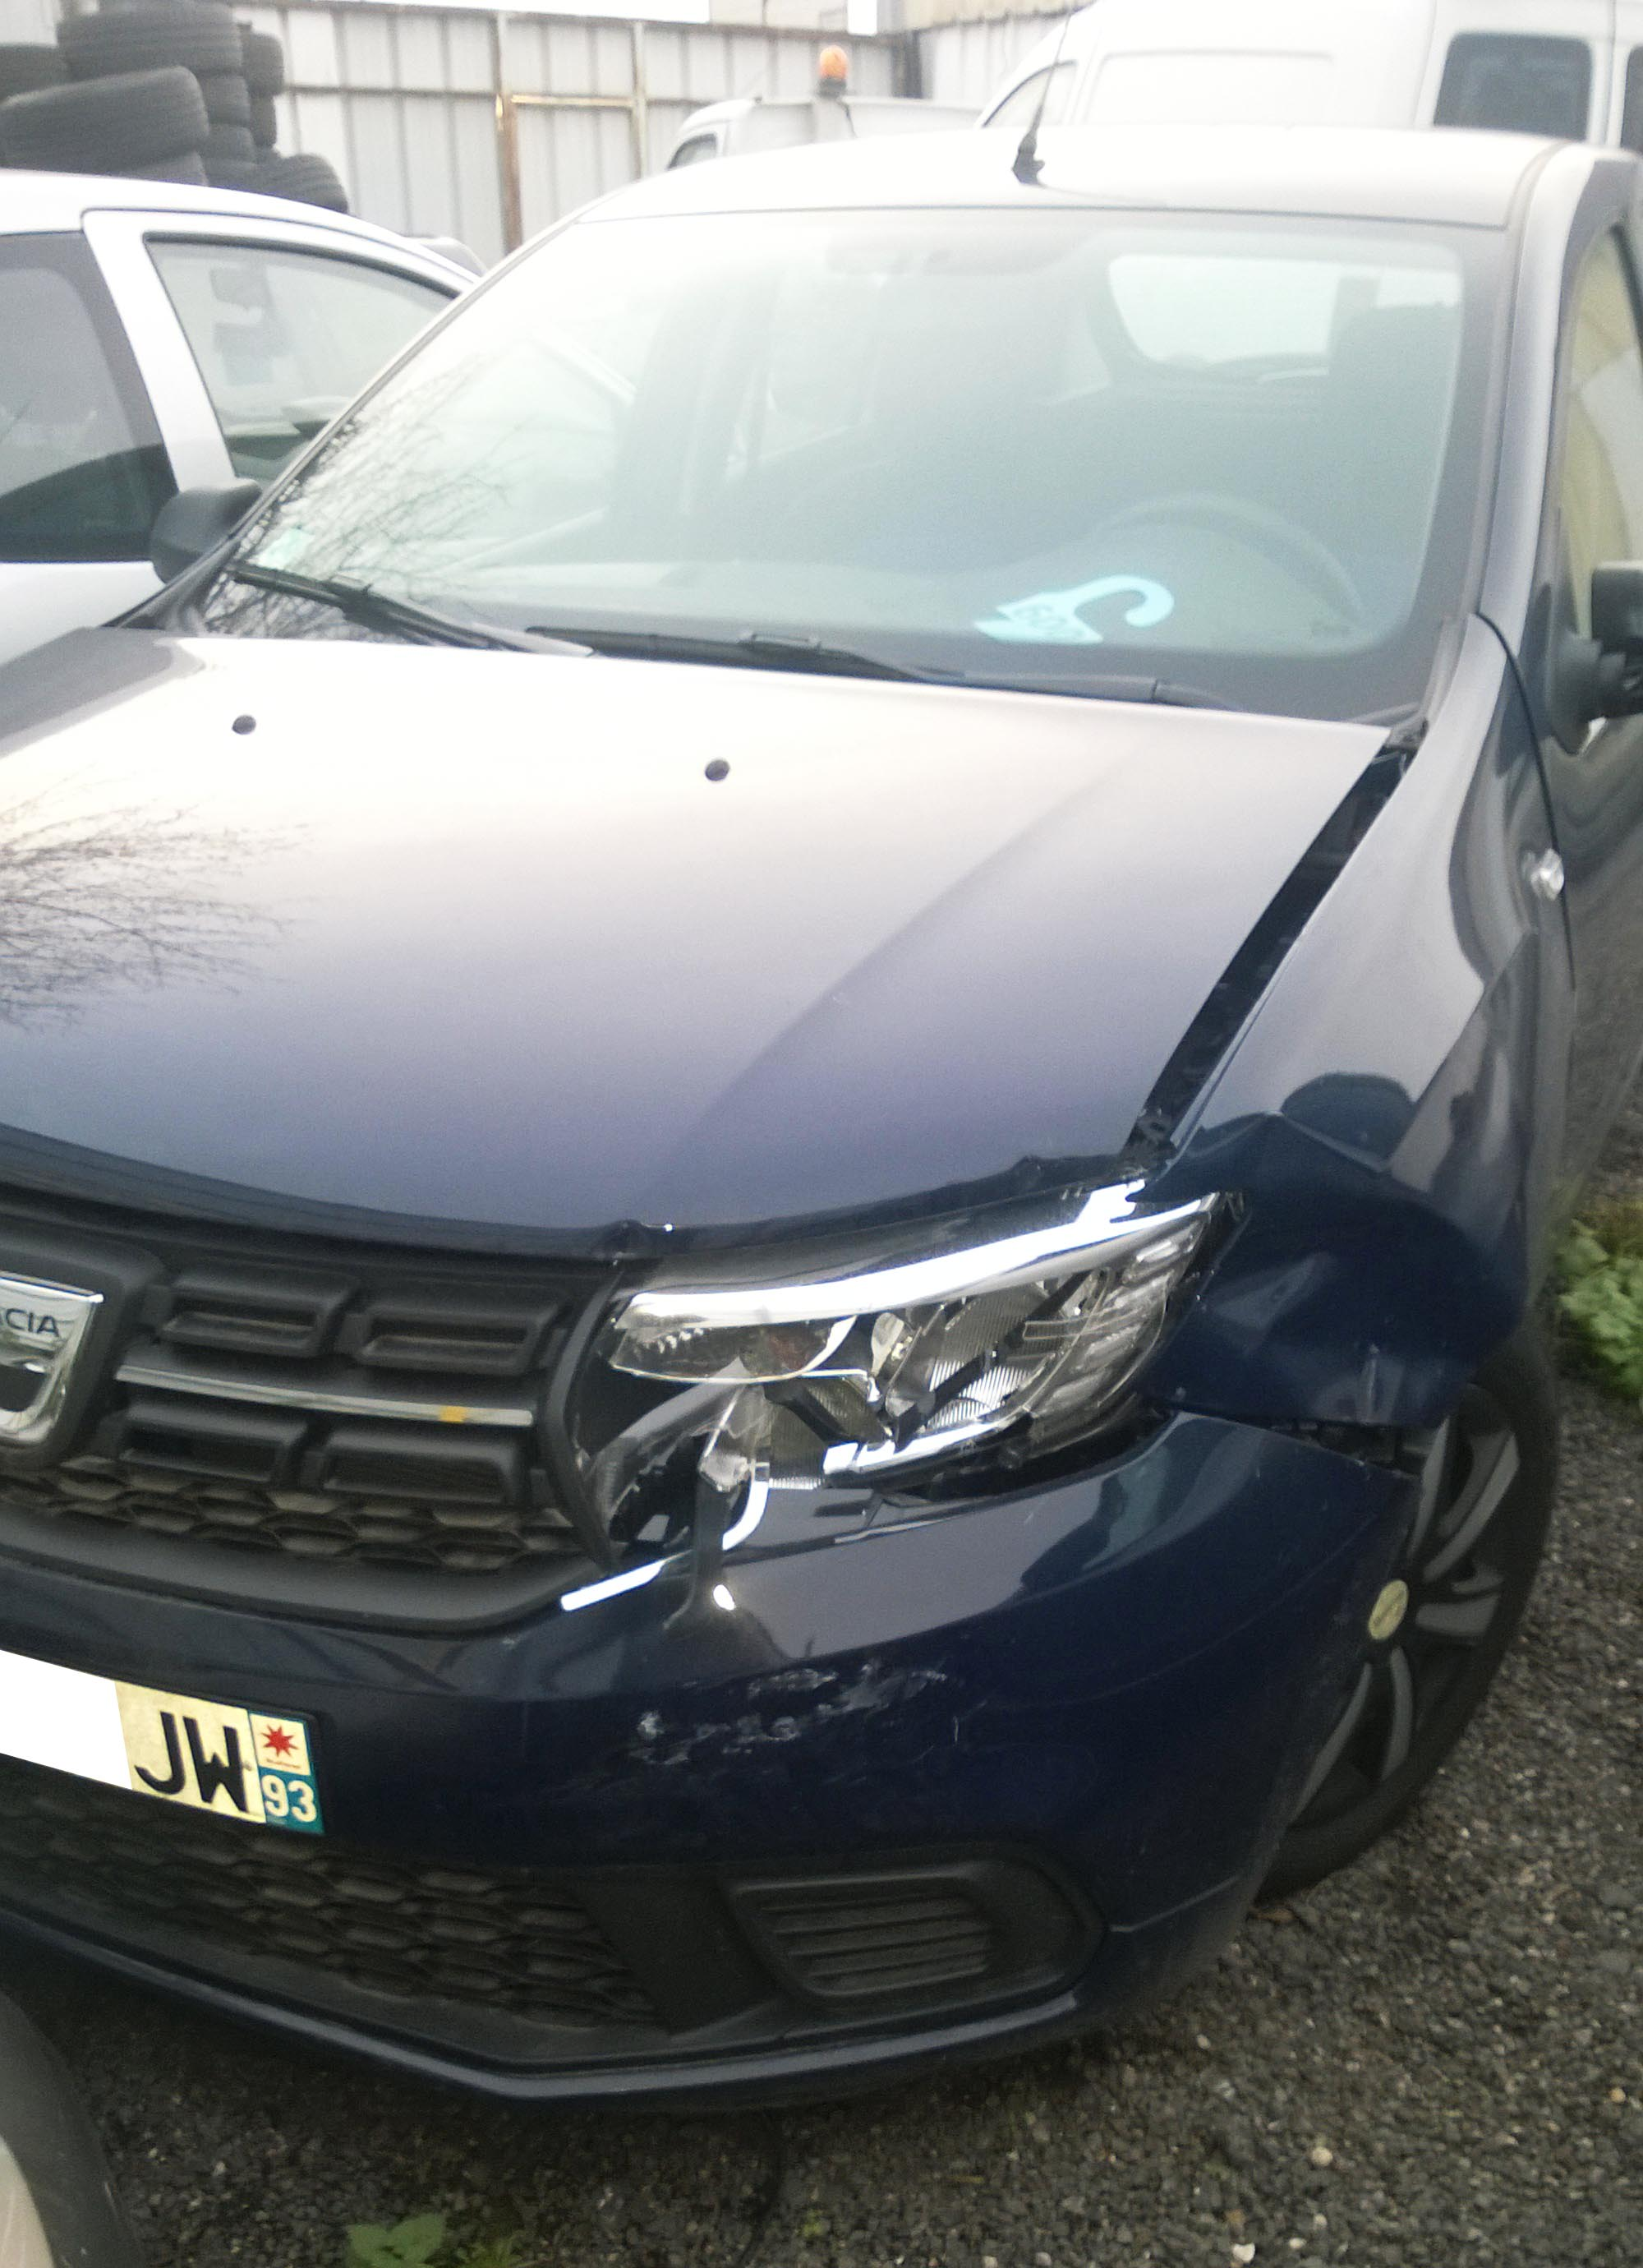 Dacia Sandero accidentée